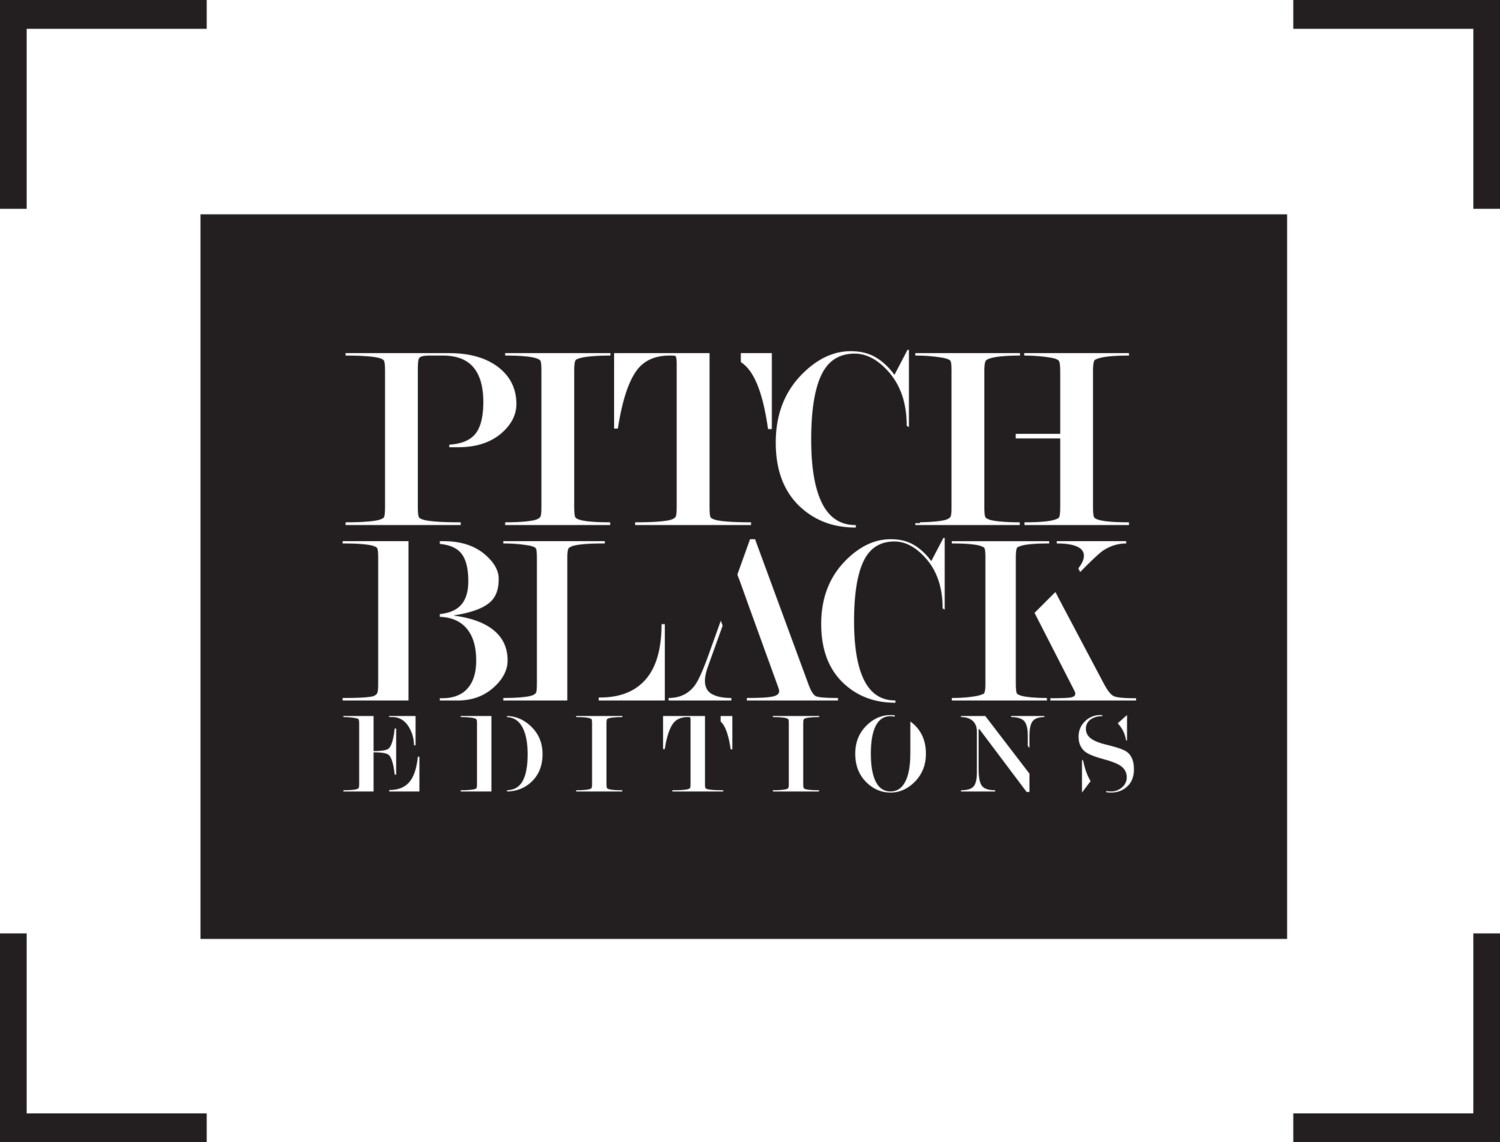 Pitch Black Editions